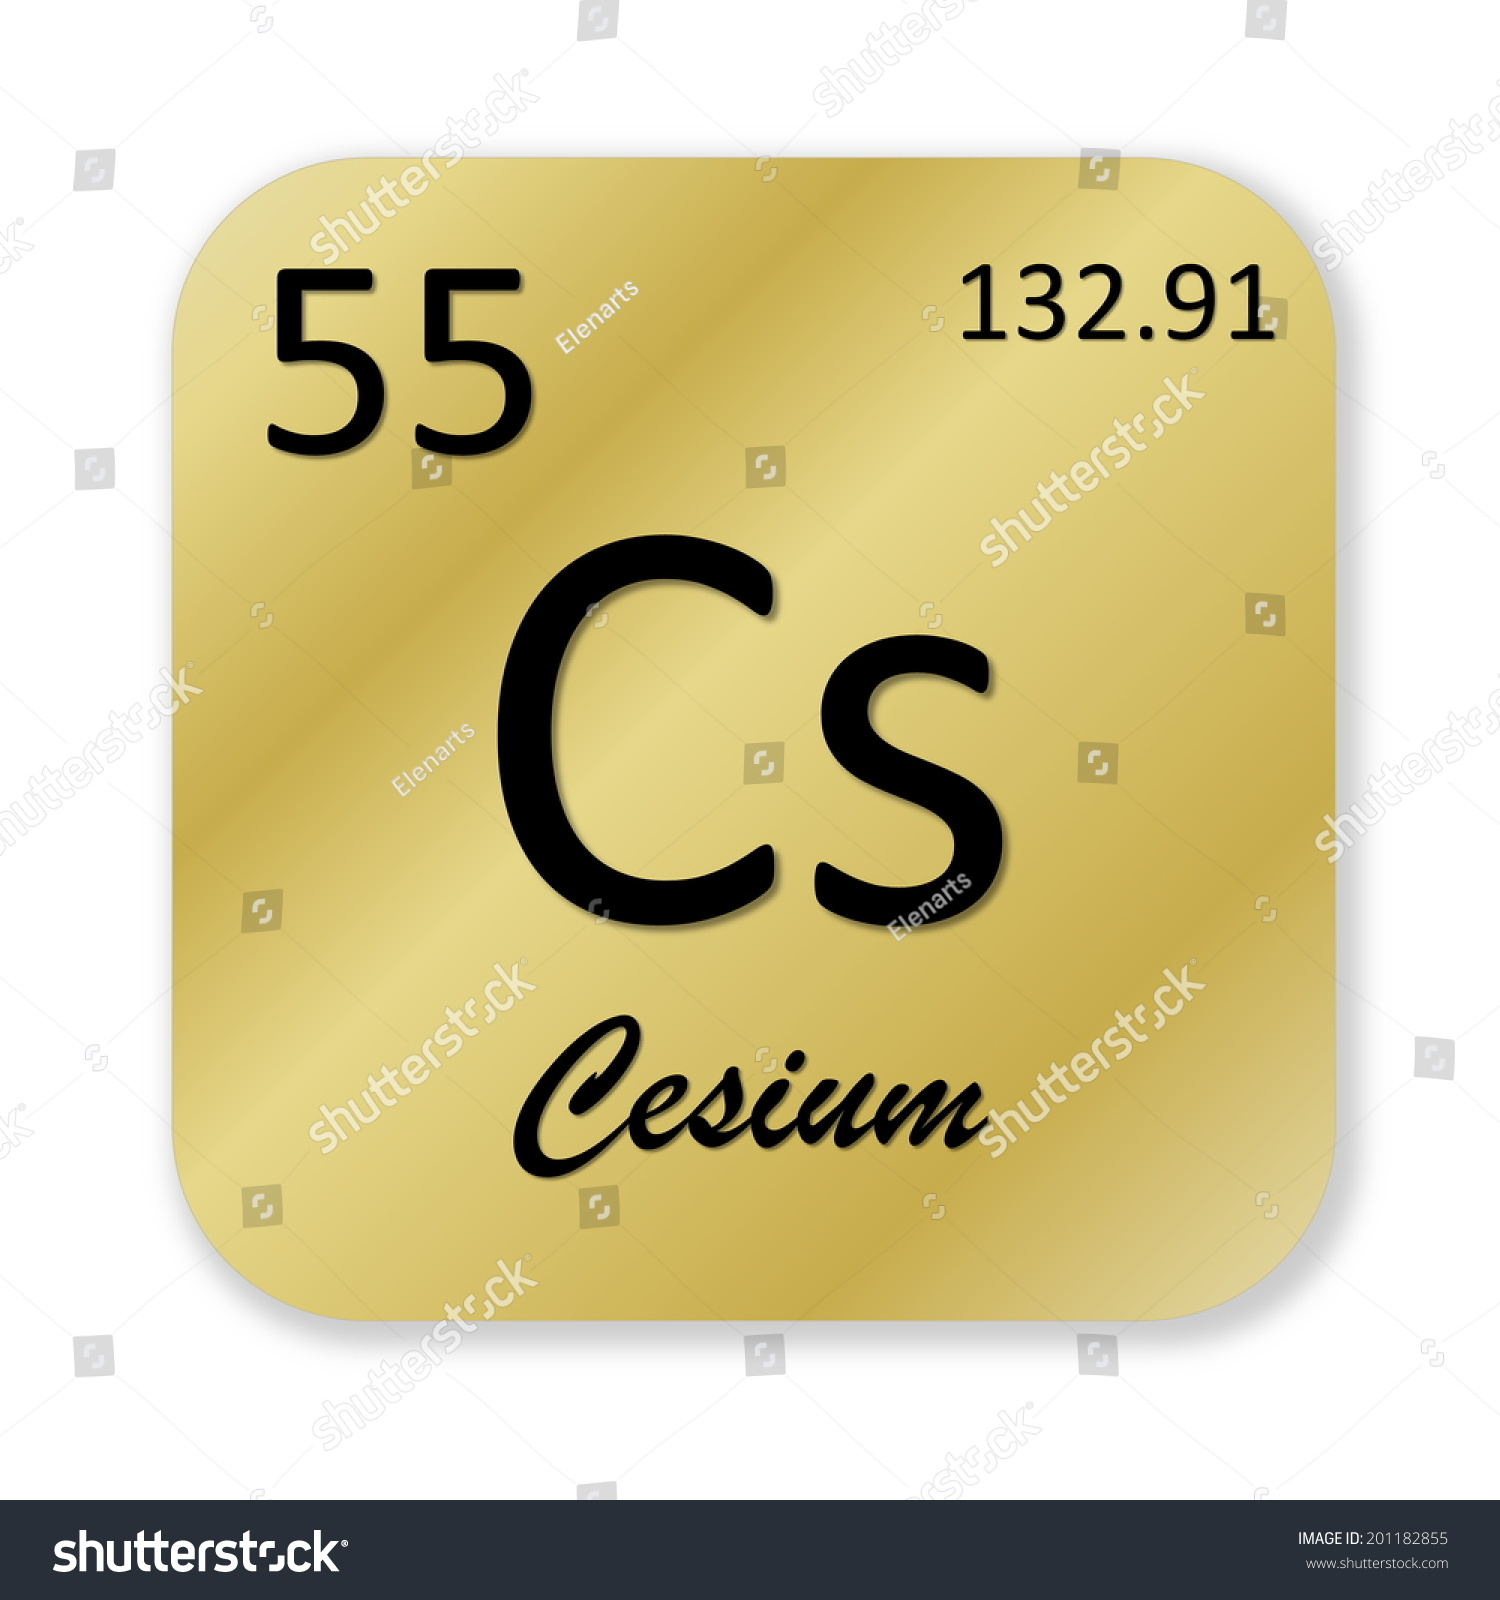 Black cesium element into golden square stock illustration black cesium element into golden square shape isolated in white background gamestrikefo Choice Image